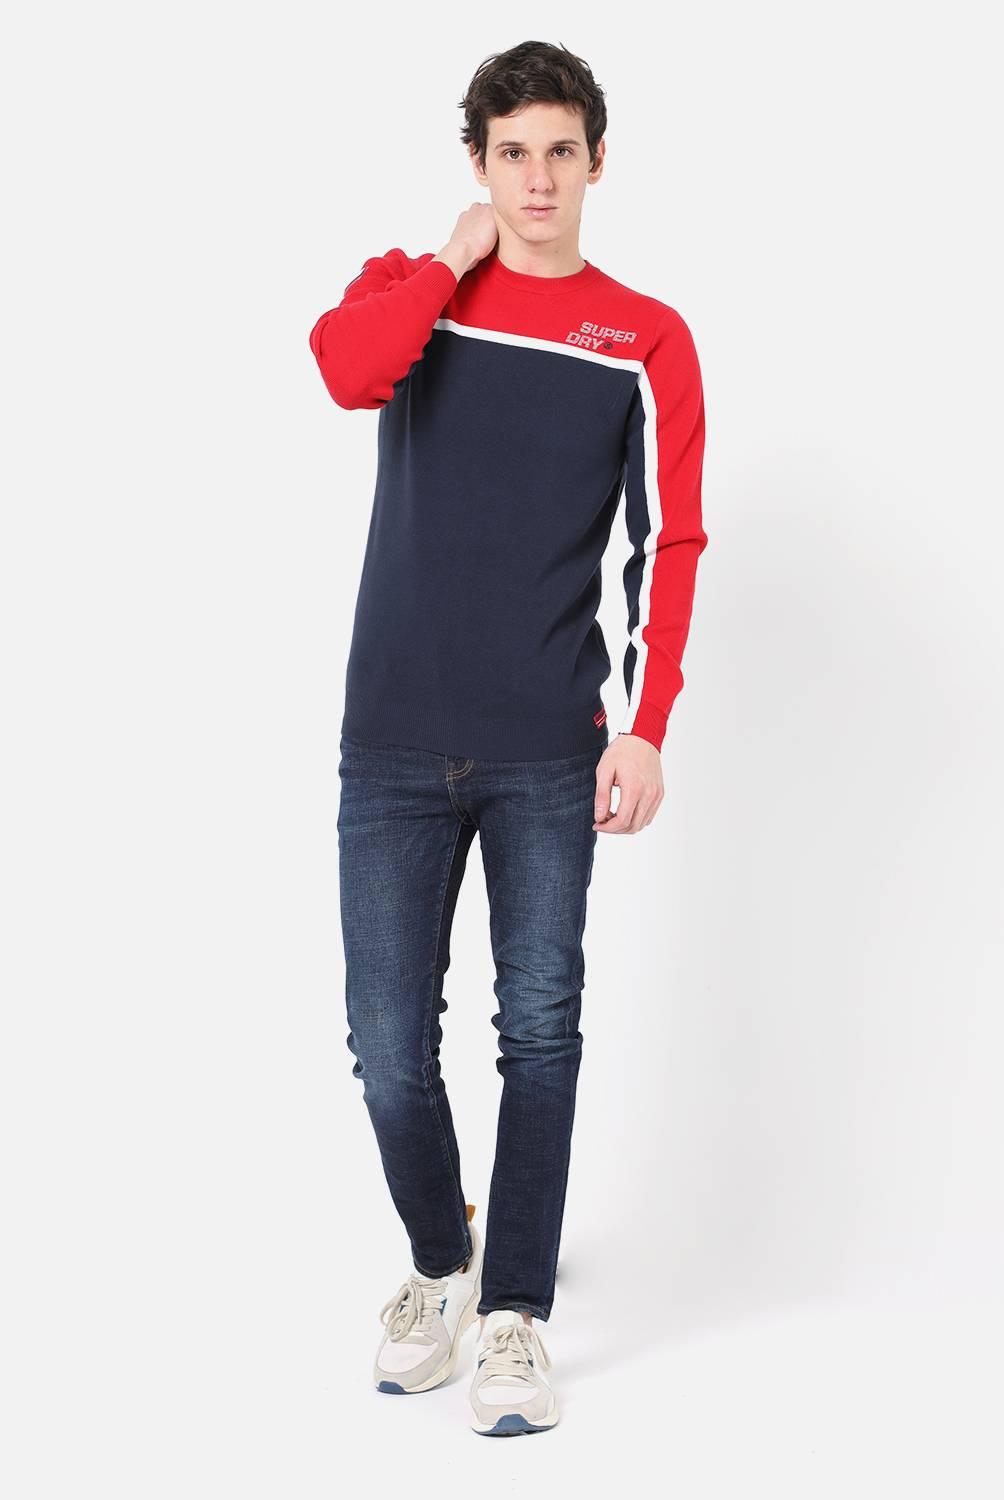 Superdry - Sweater Hombre